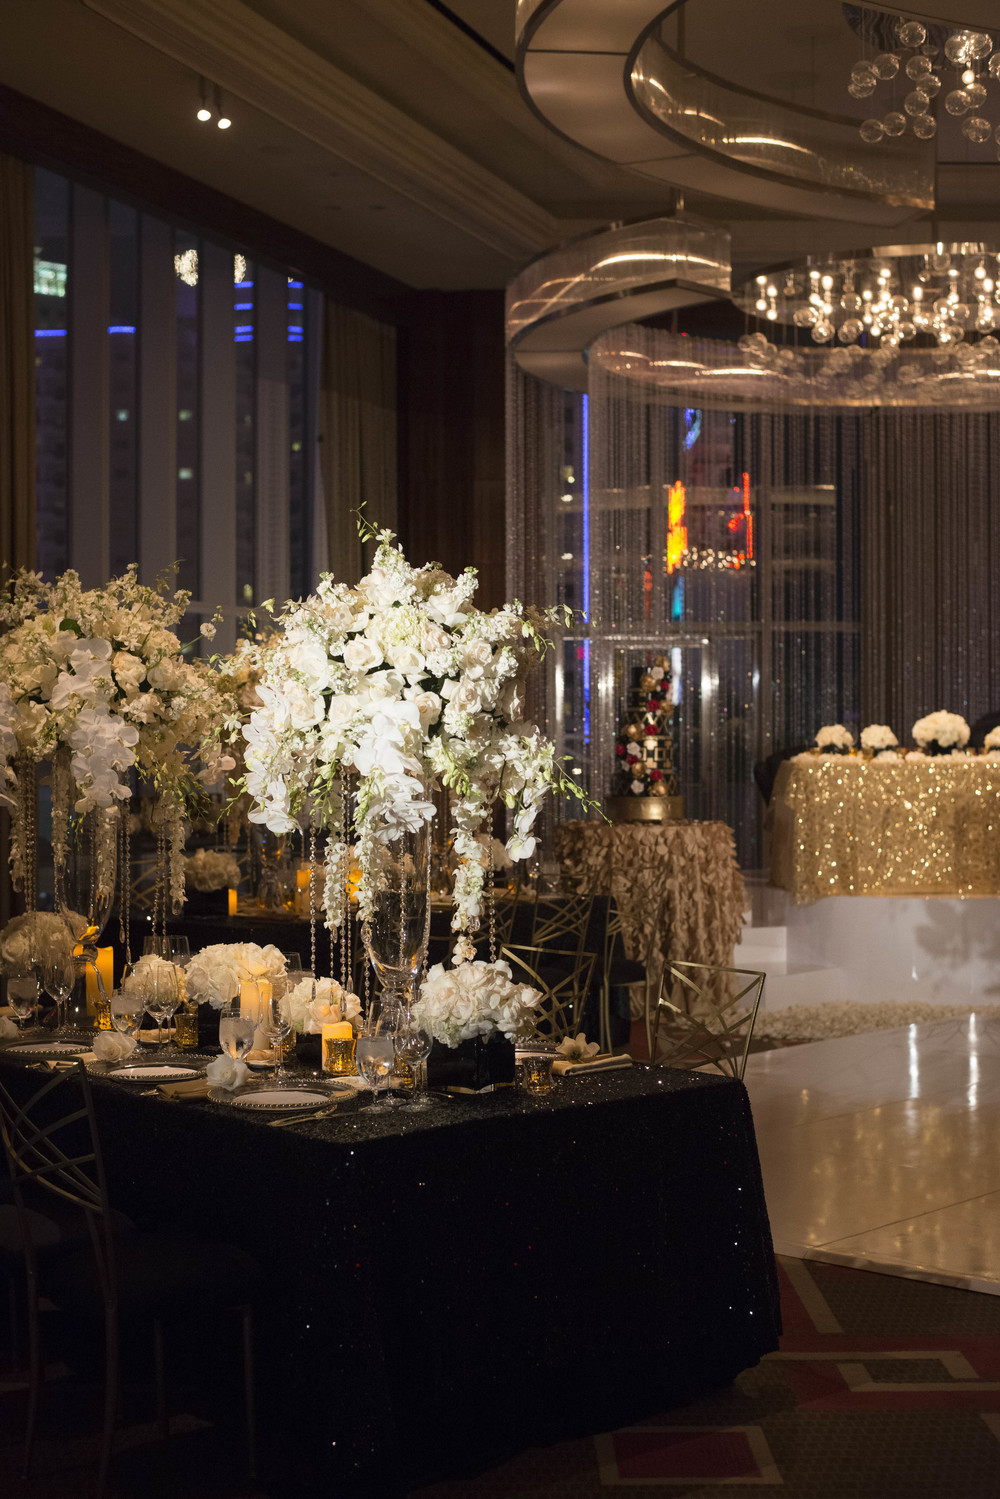 Black, white, and gold wedding.  Old Hollywood wedding.   Credits:  Wedding Planning and Event Design by  Andrea Eppolito Events  Luxury Las Vegas Wedding held at  The Mandarin Oriental .  Florals and Decor handled by  Destinations by Design .  Photography by  AltF Photography .  Wedding Film and Videography by  Pure Light Creative  with Music and Entertainment by  Mike Fox & Company .  Hair and Make Up by  Your Beauty Call .  Photo Booth and Video Screen by  The Joy Squad .    Stationery by  Laura Damiano Designs .